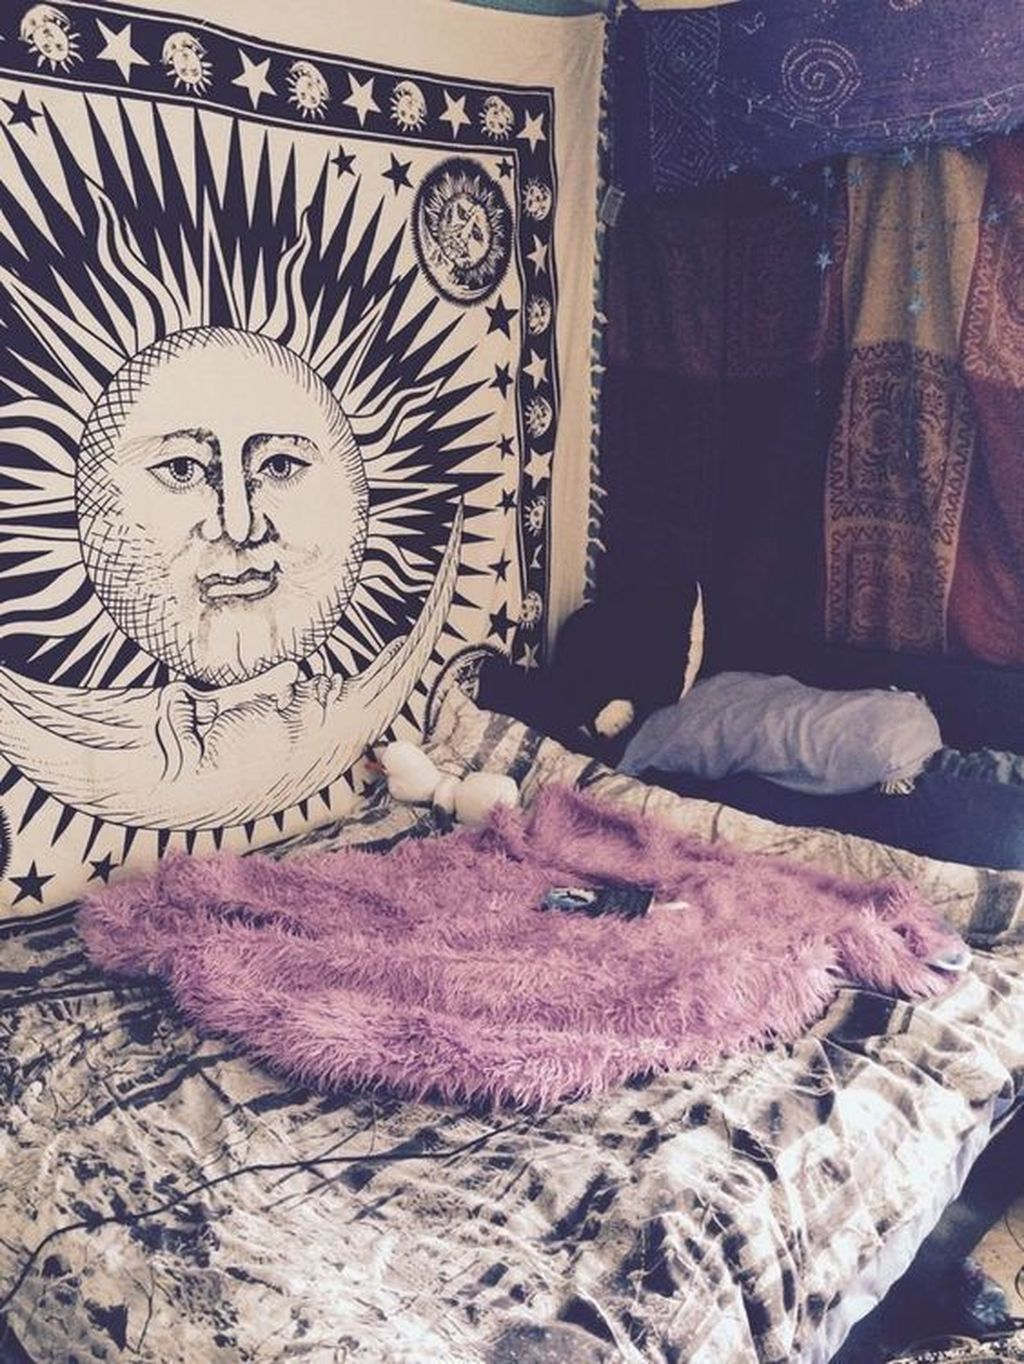 Stunning Hippie Room Decor Ideas You Never Seen Before 36